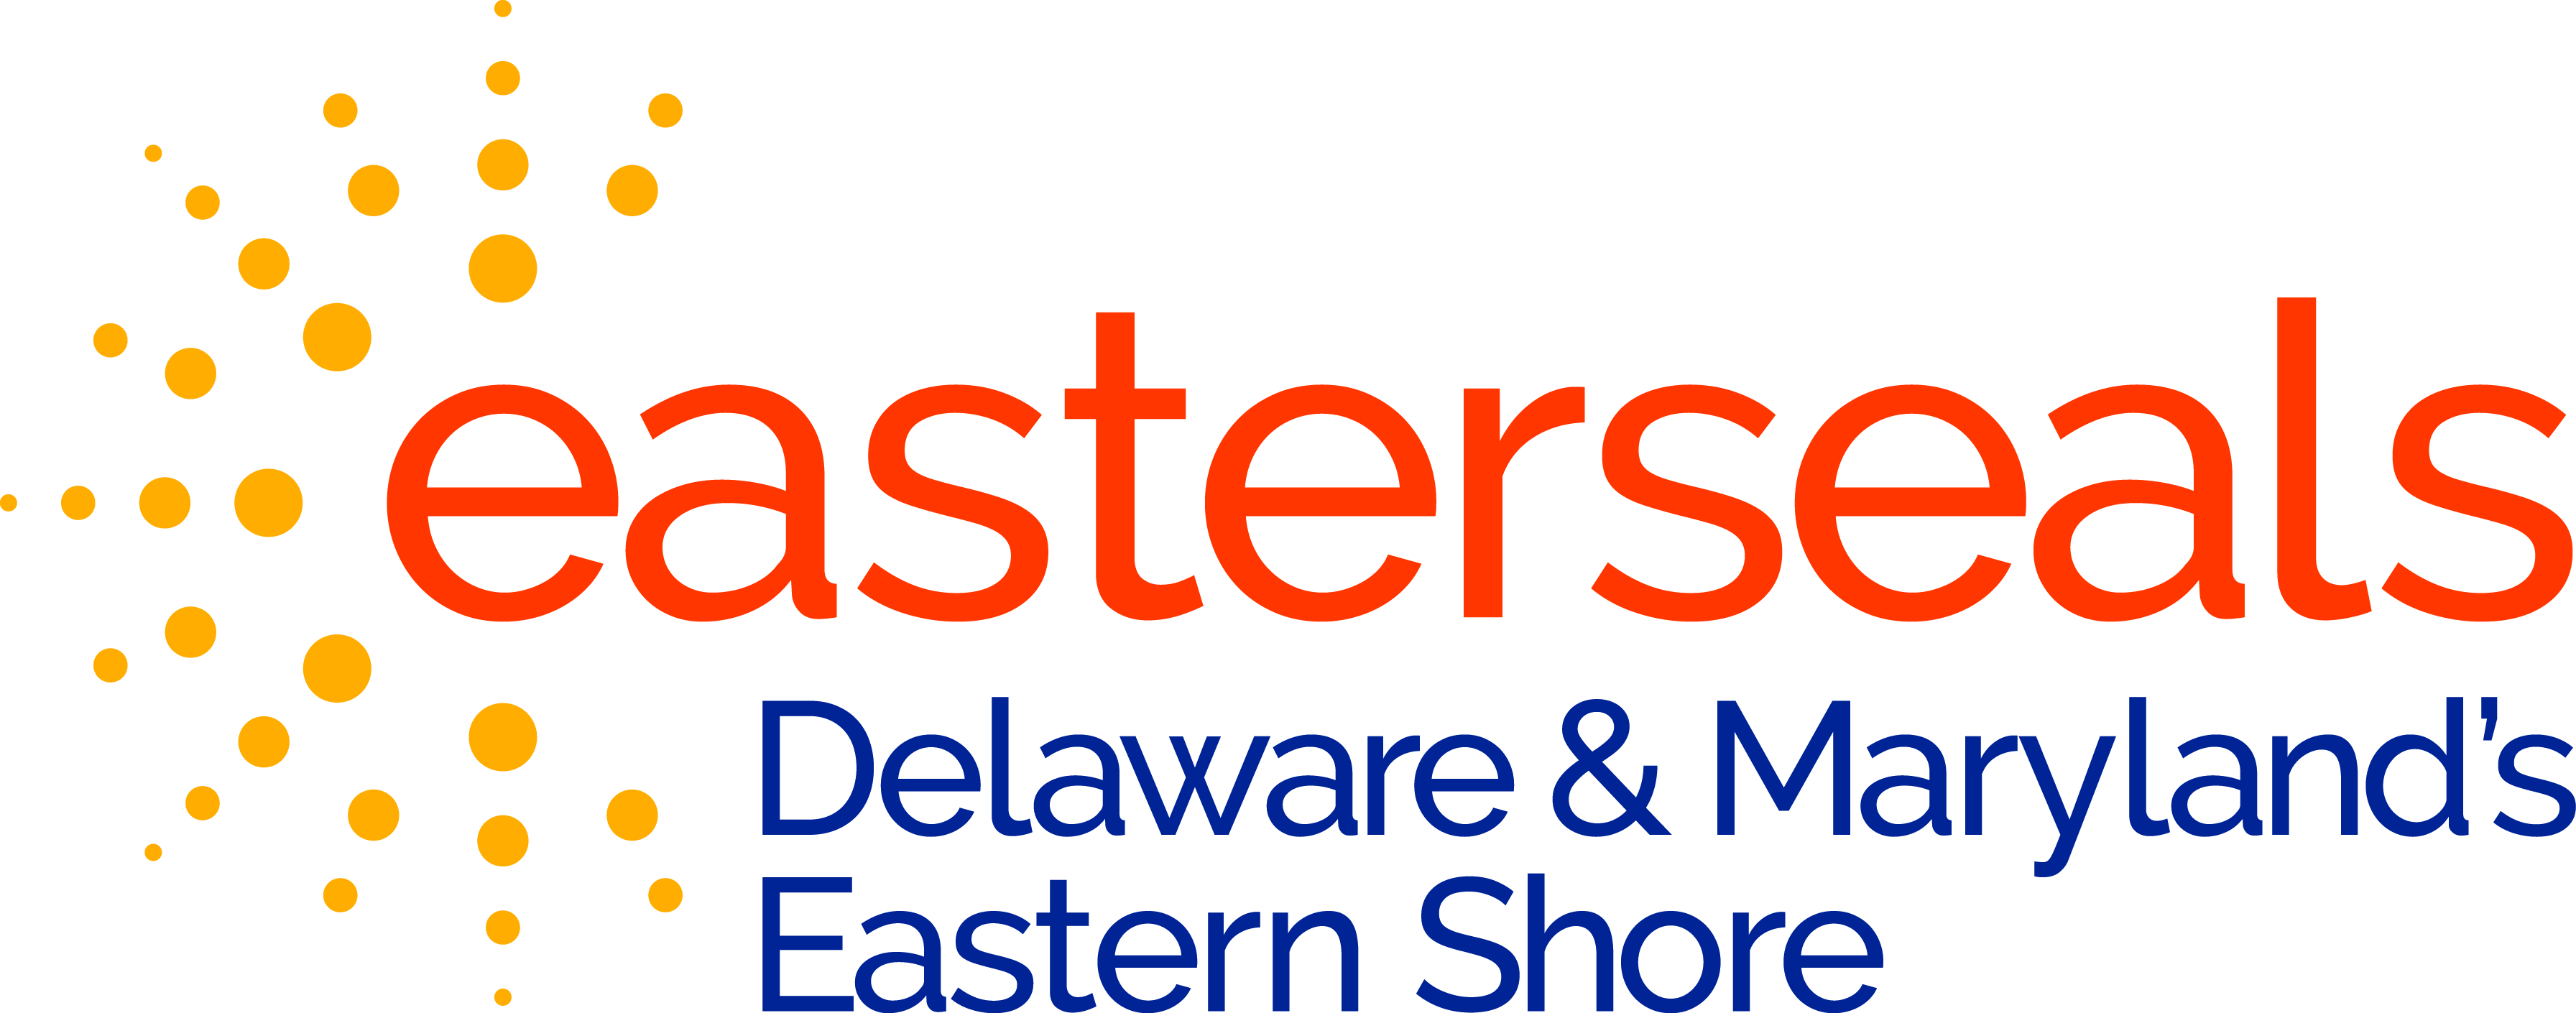 Easterseals Delaware and Maryland's Eastern Shore